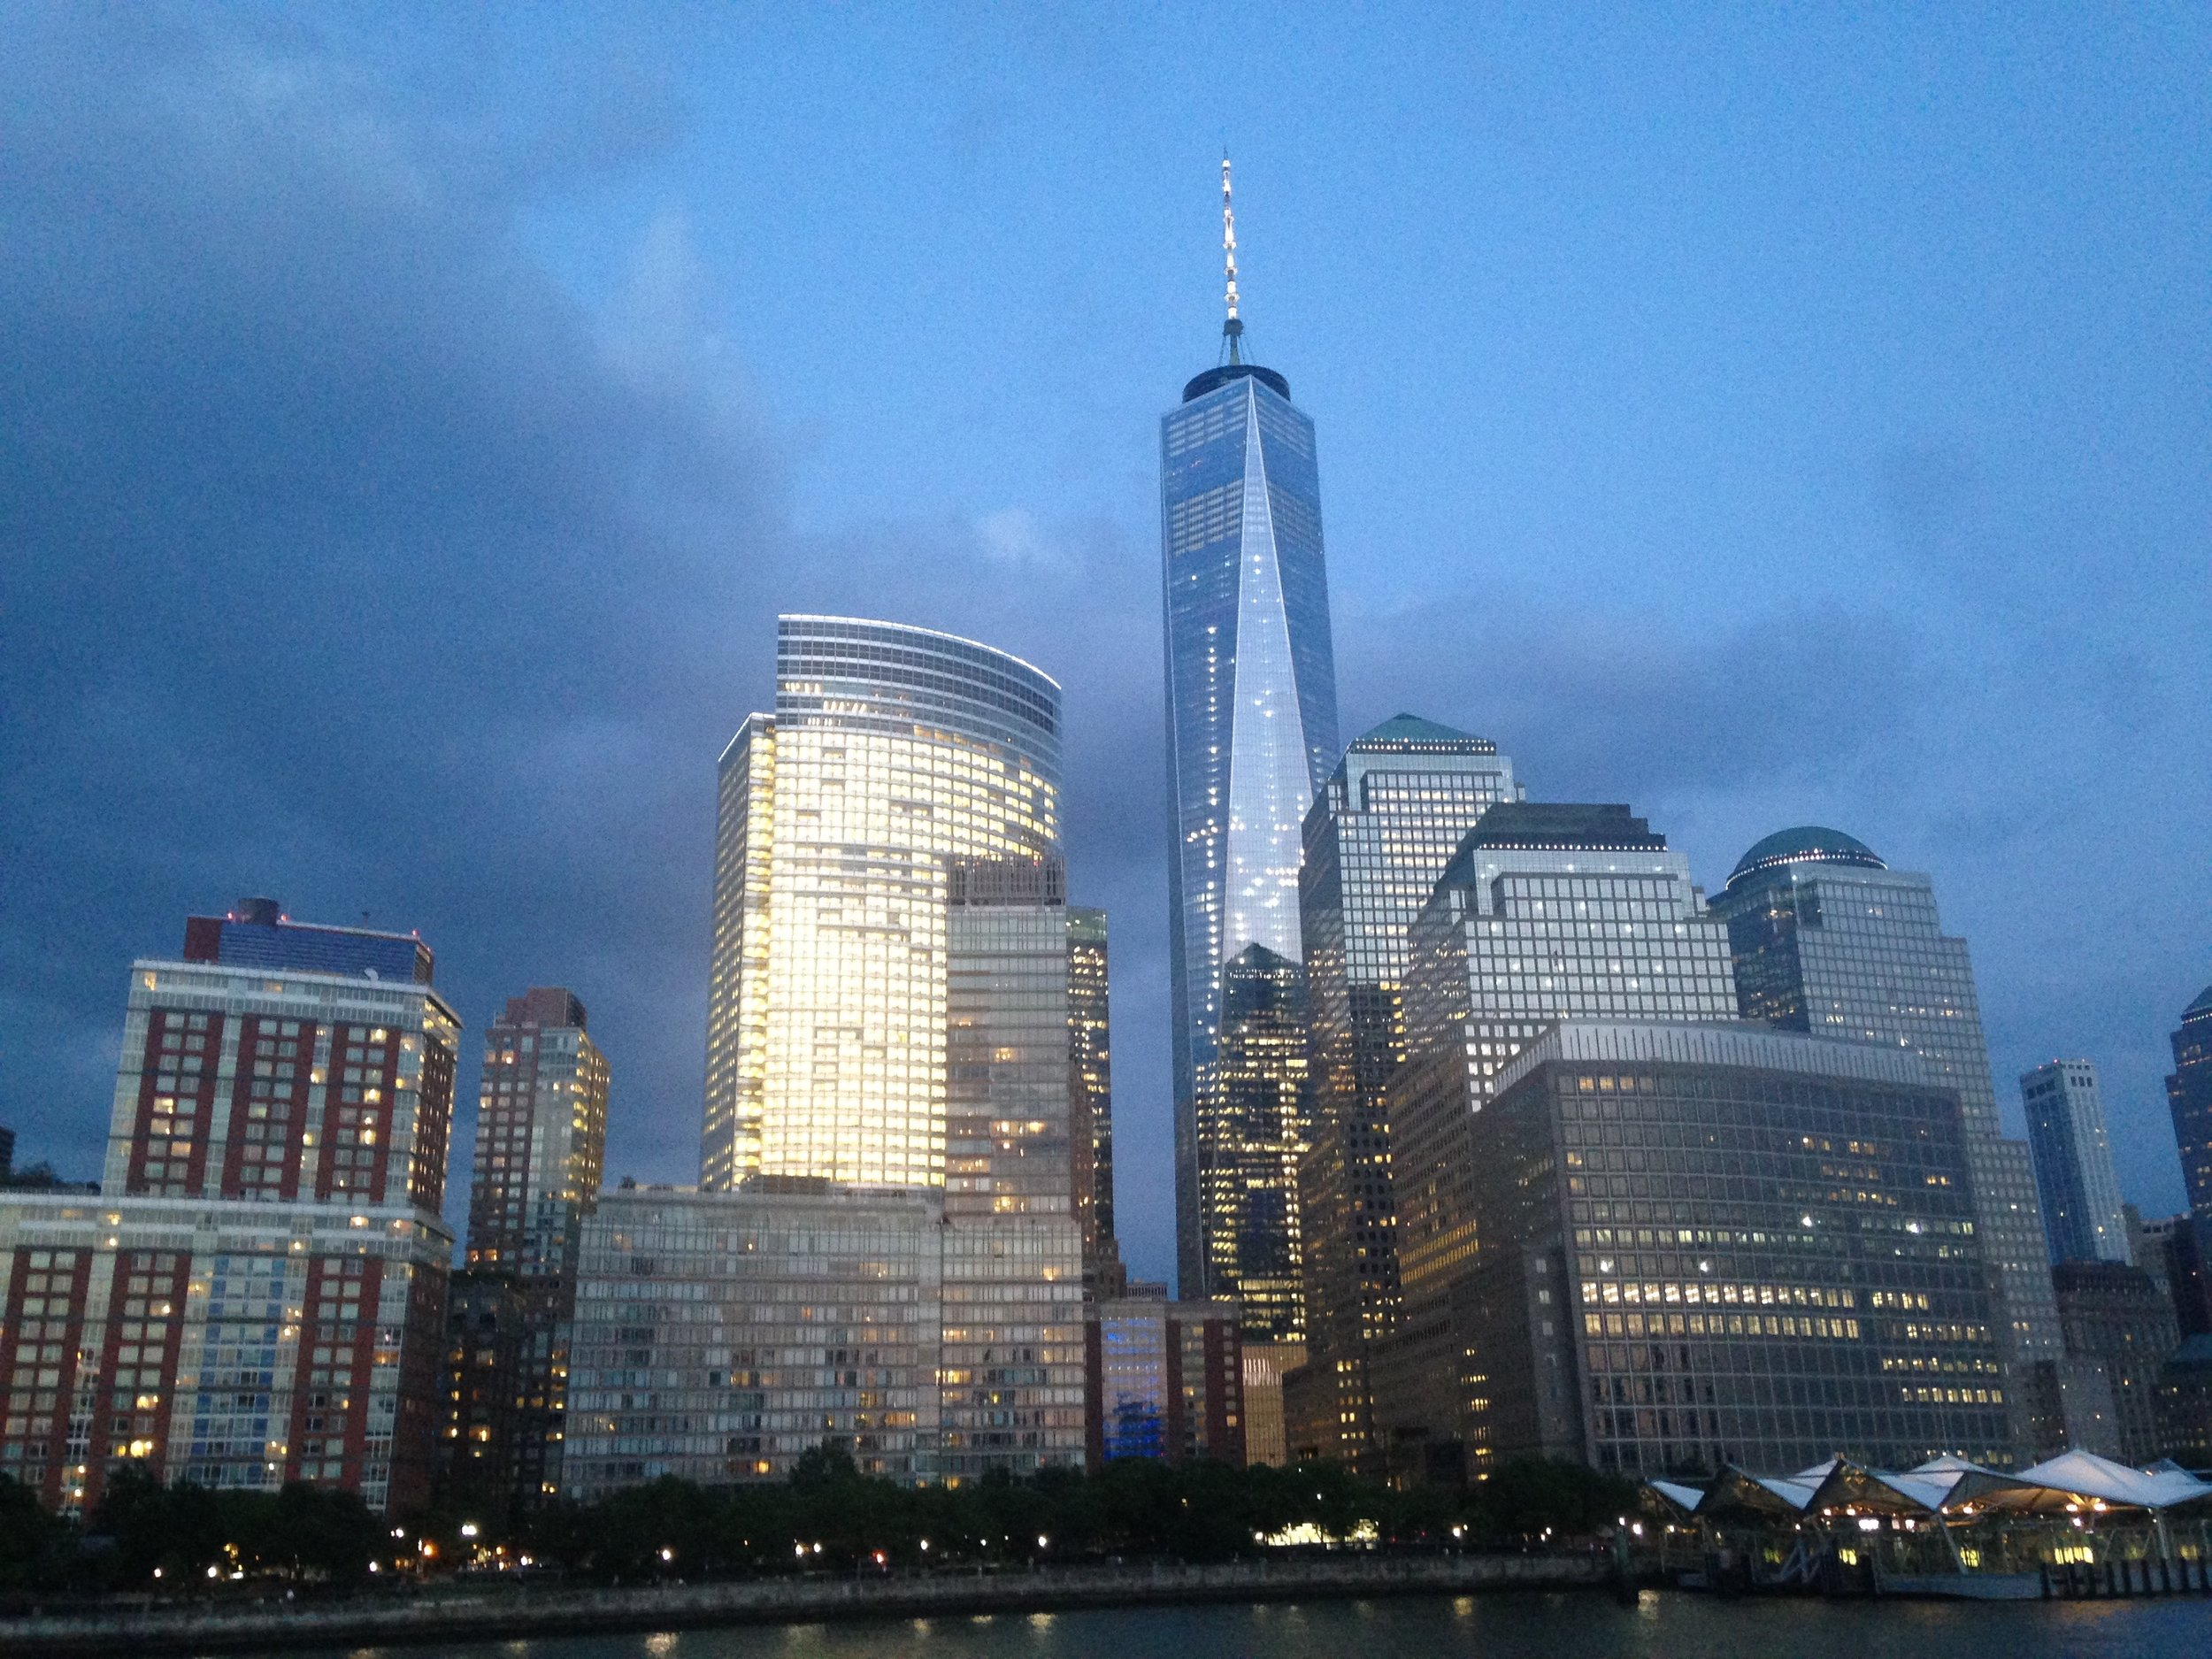 Taken at the Book Industry Guild of New York's annual Barge Bash on June 9th